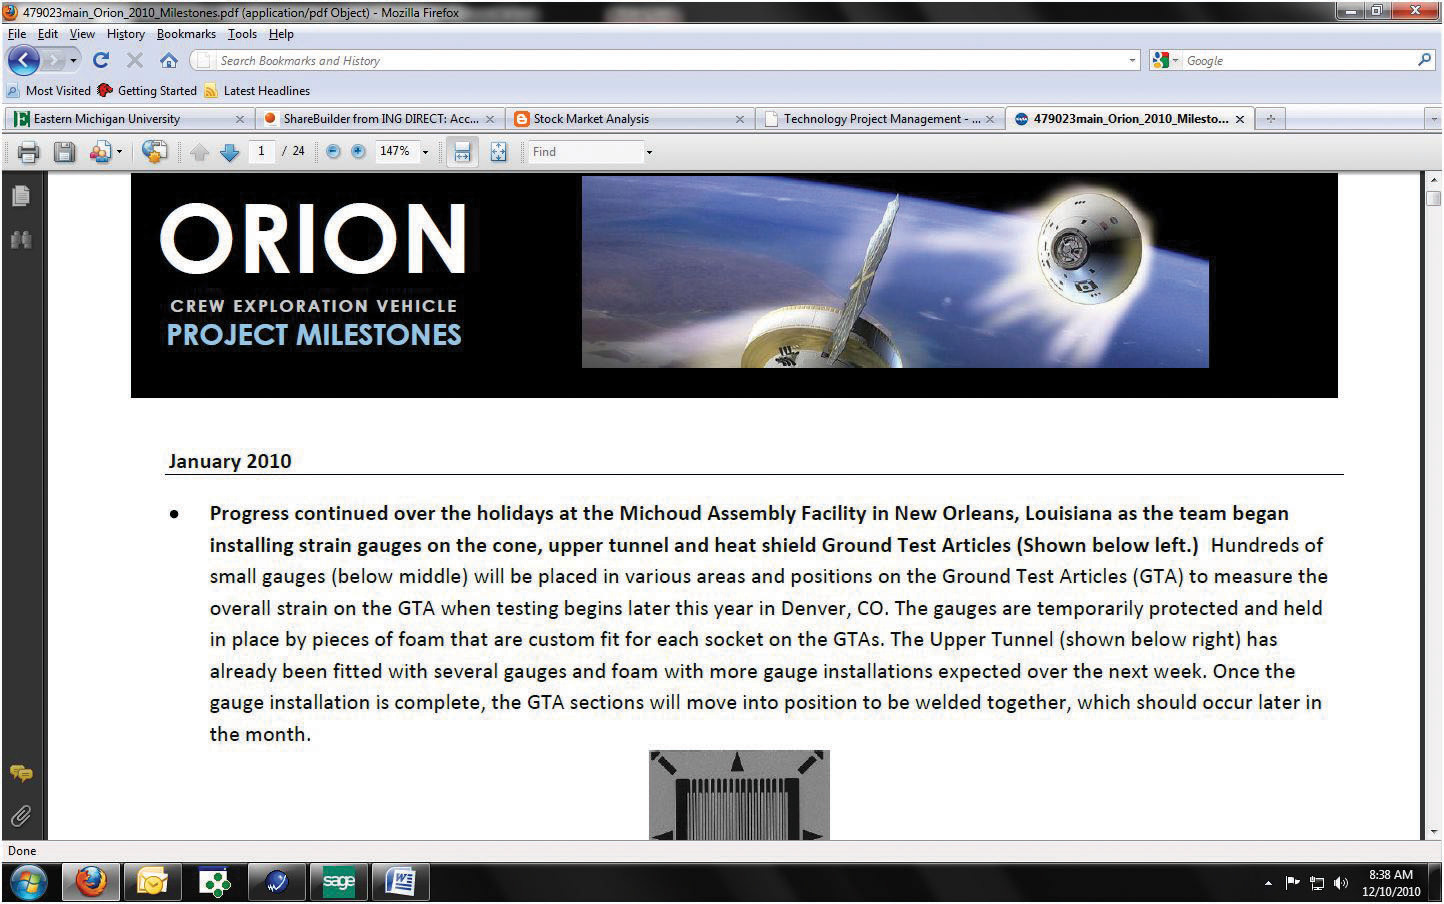 Orion Milestone from NASA's homepage